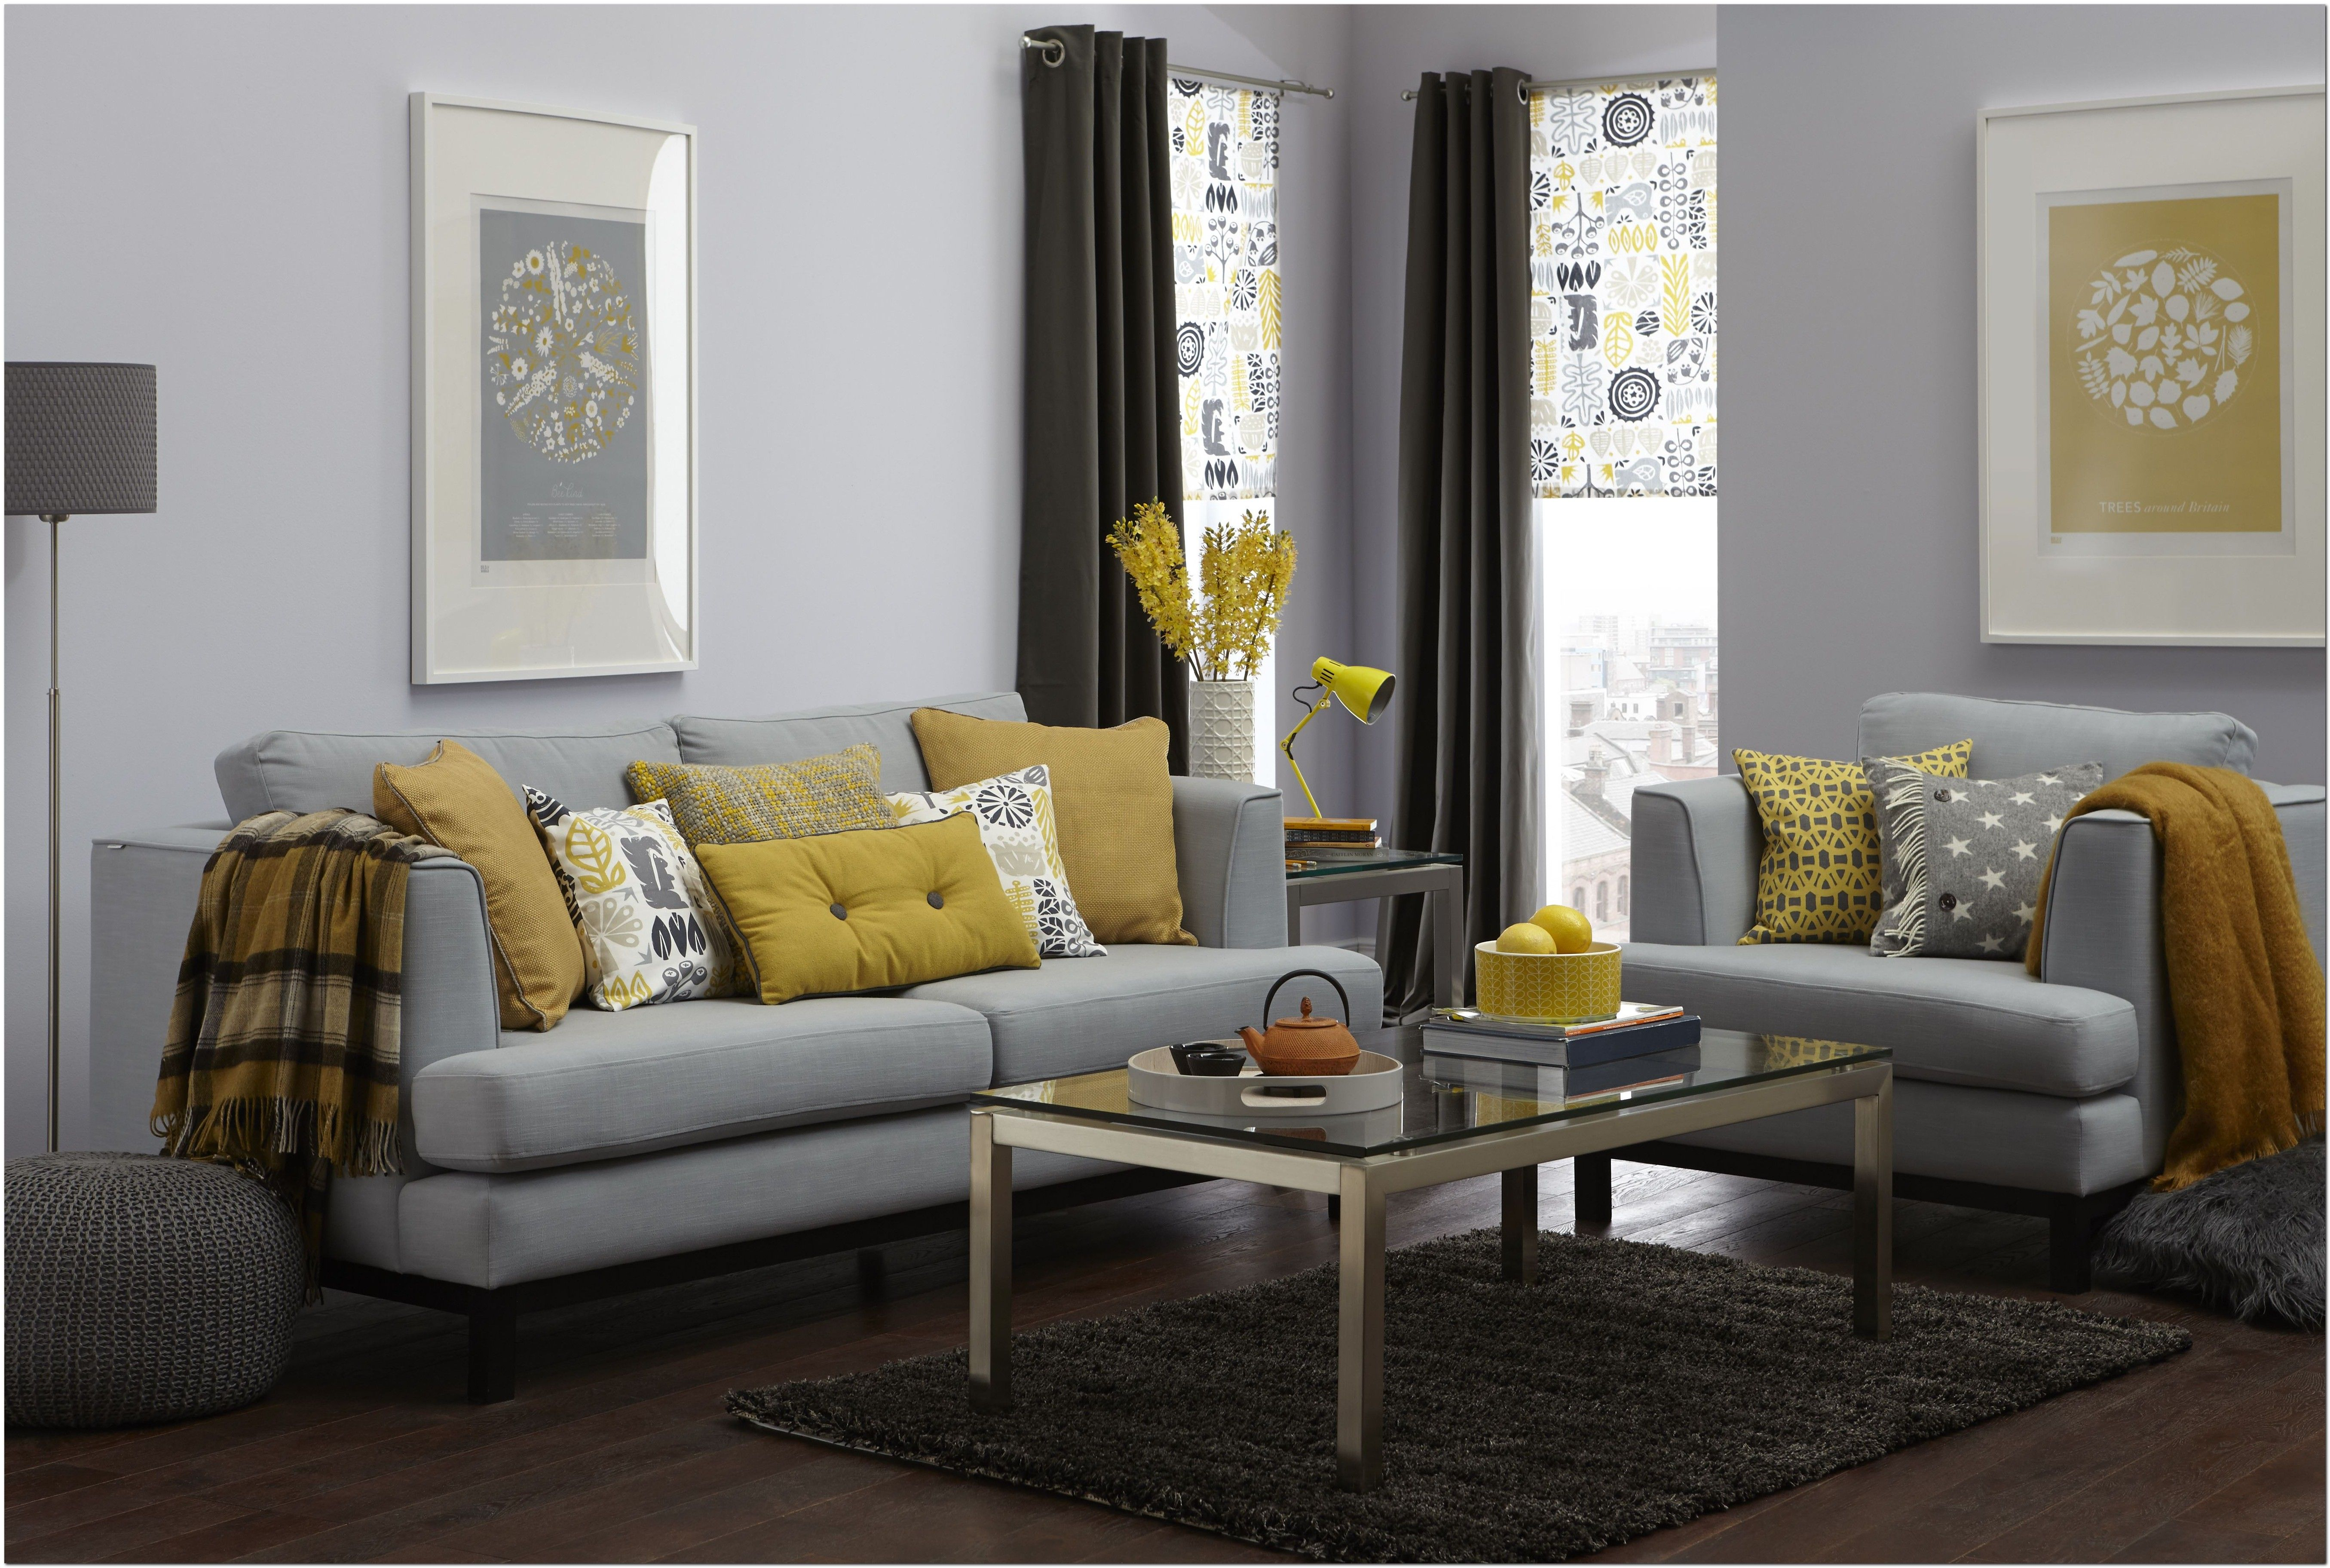 80 awesome ideas living room for small apartment